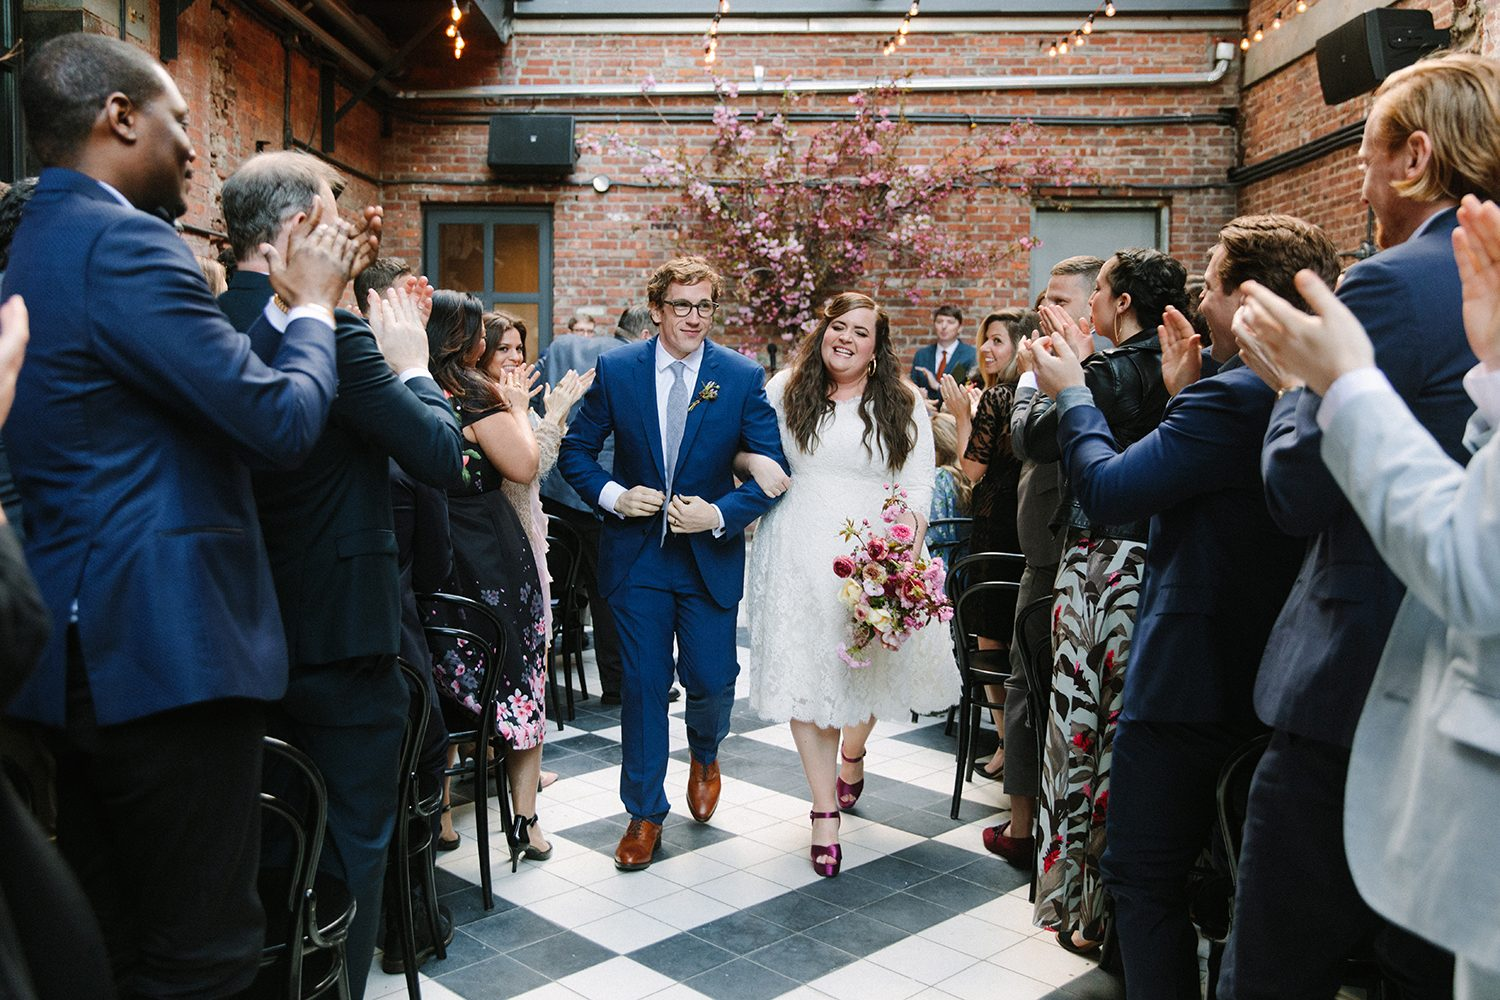 Aidy Bryant wedding photo